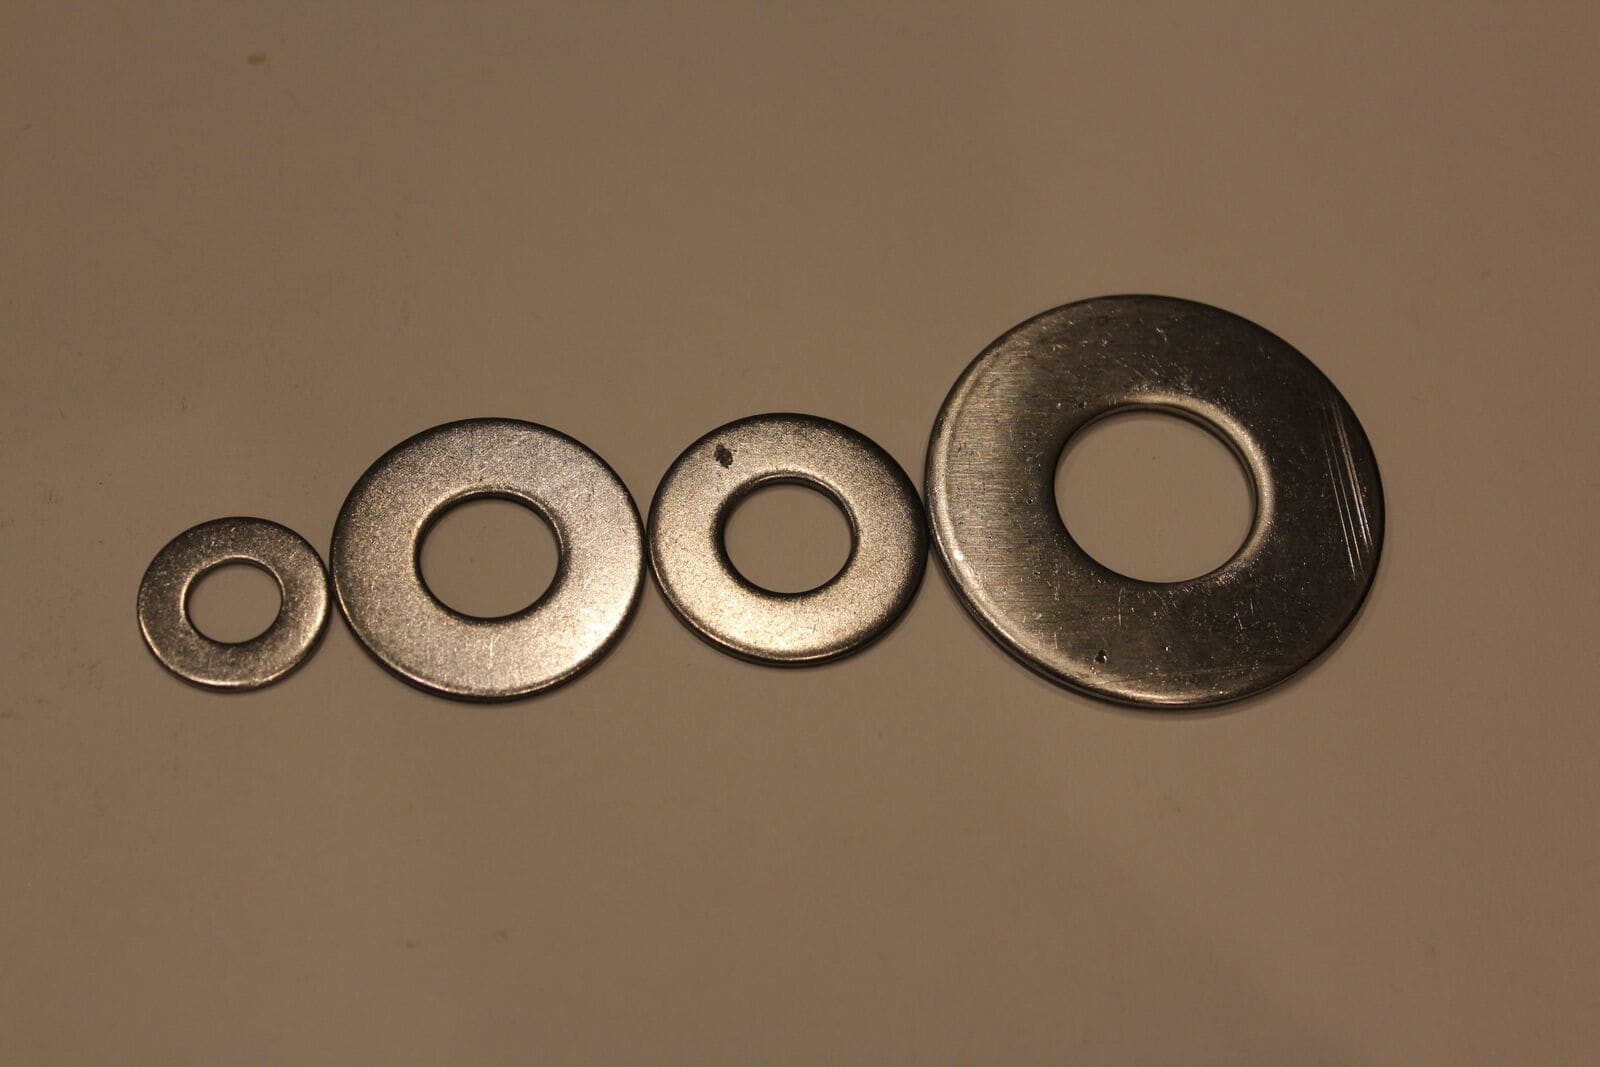 302 Stainless Steel Flat Washers